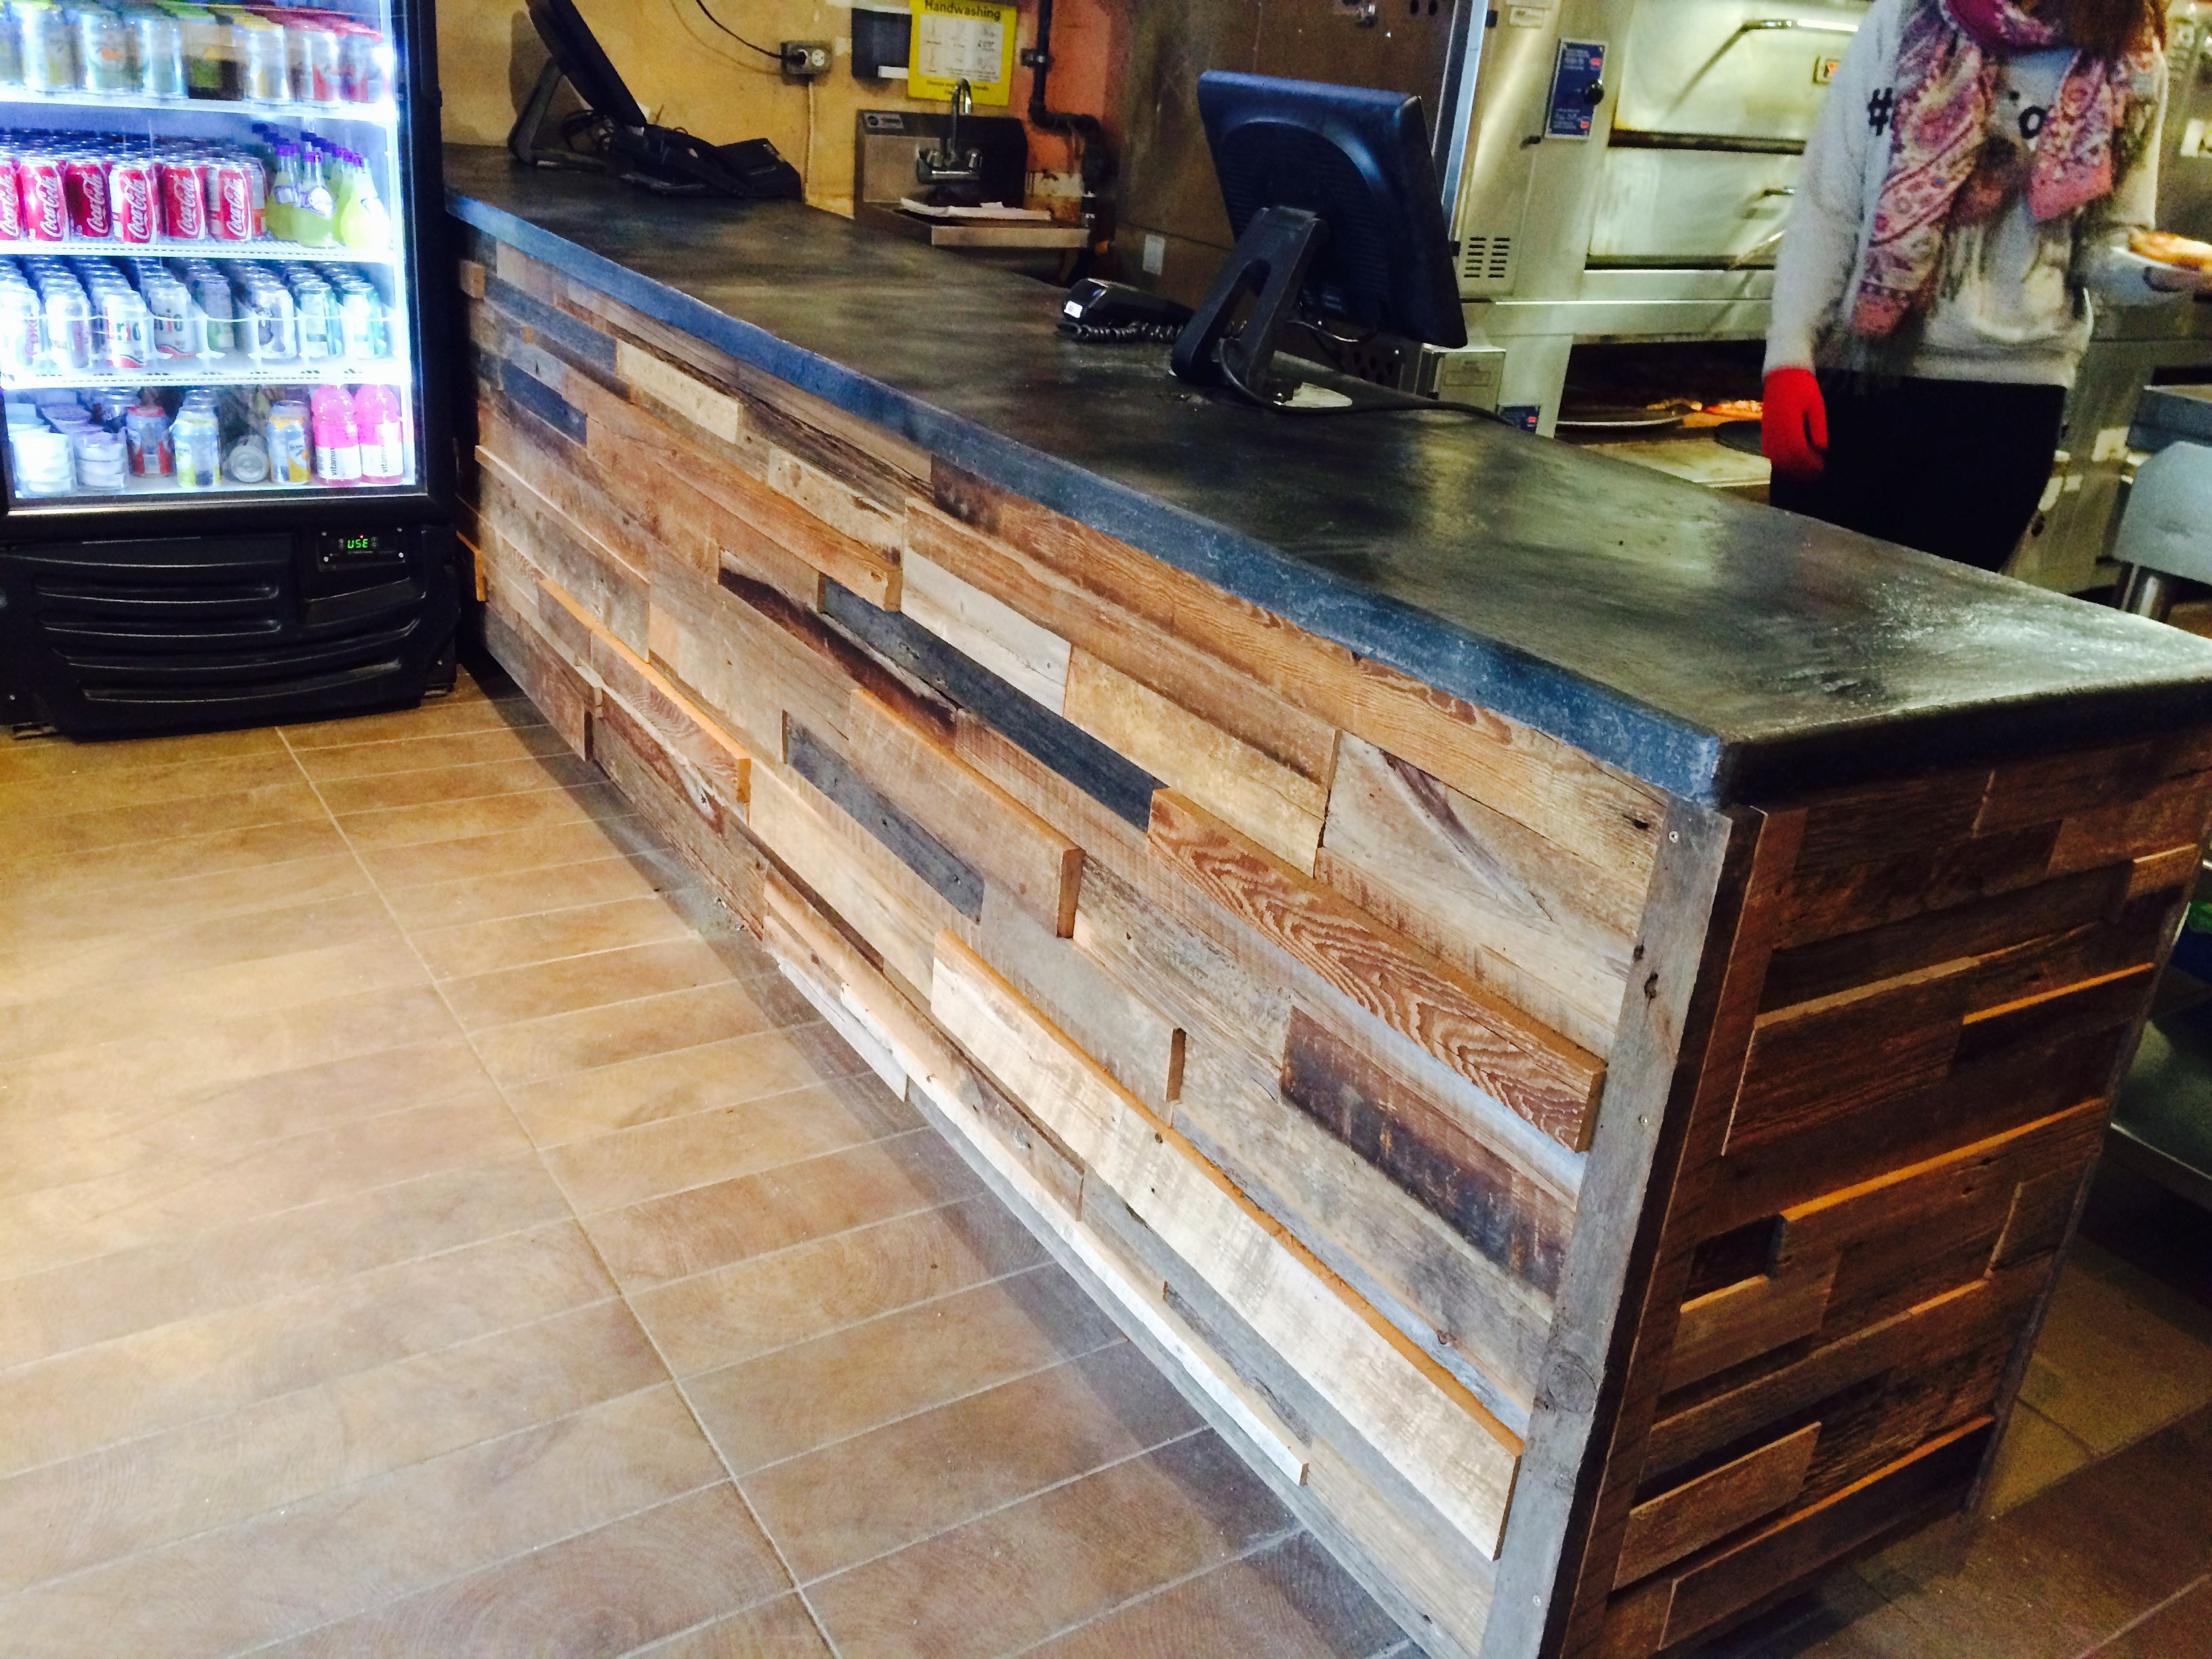 Reclaimed wood counter area for King Slice Pizza in Toronto by